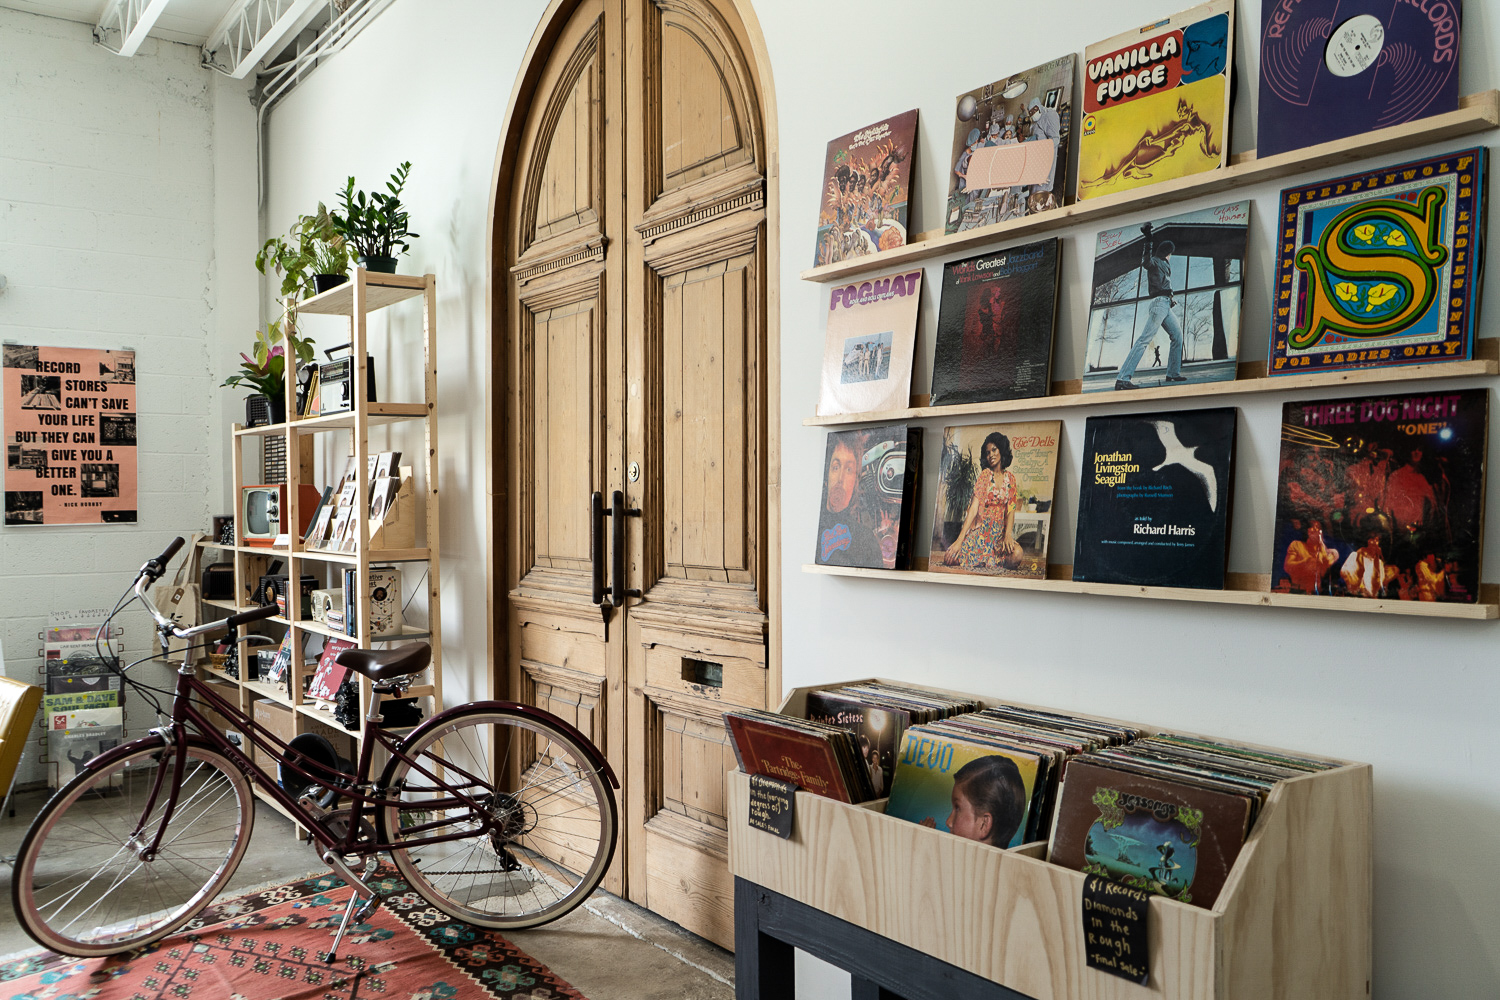 Rust & Wax has a wide selection of vinyl records.